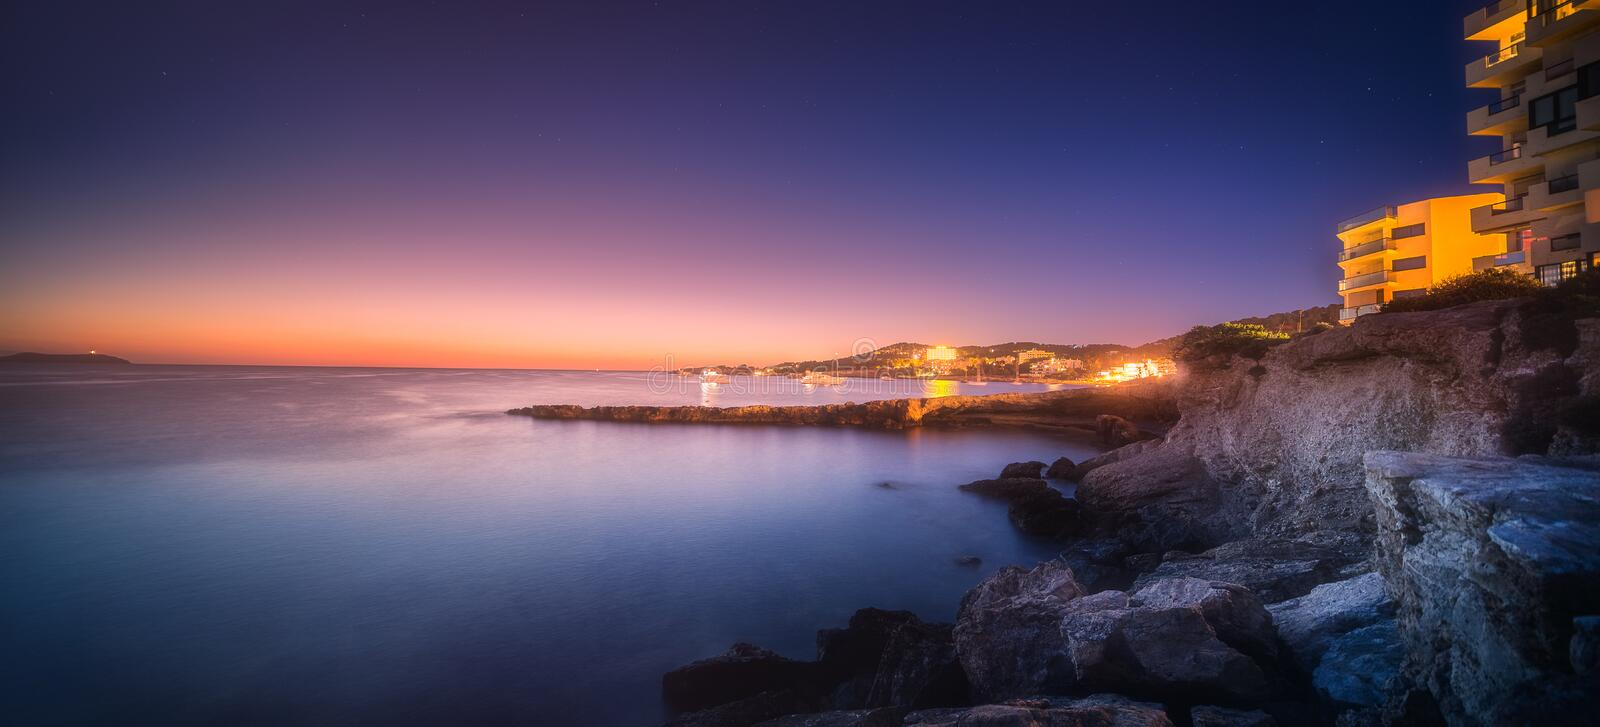 Download Sunset View Of San Antonio Beach And Ibiza, Spain Stock Image - Image of ocean, cala: 108912555